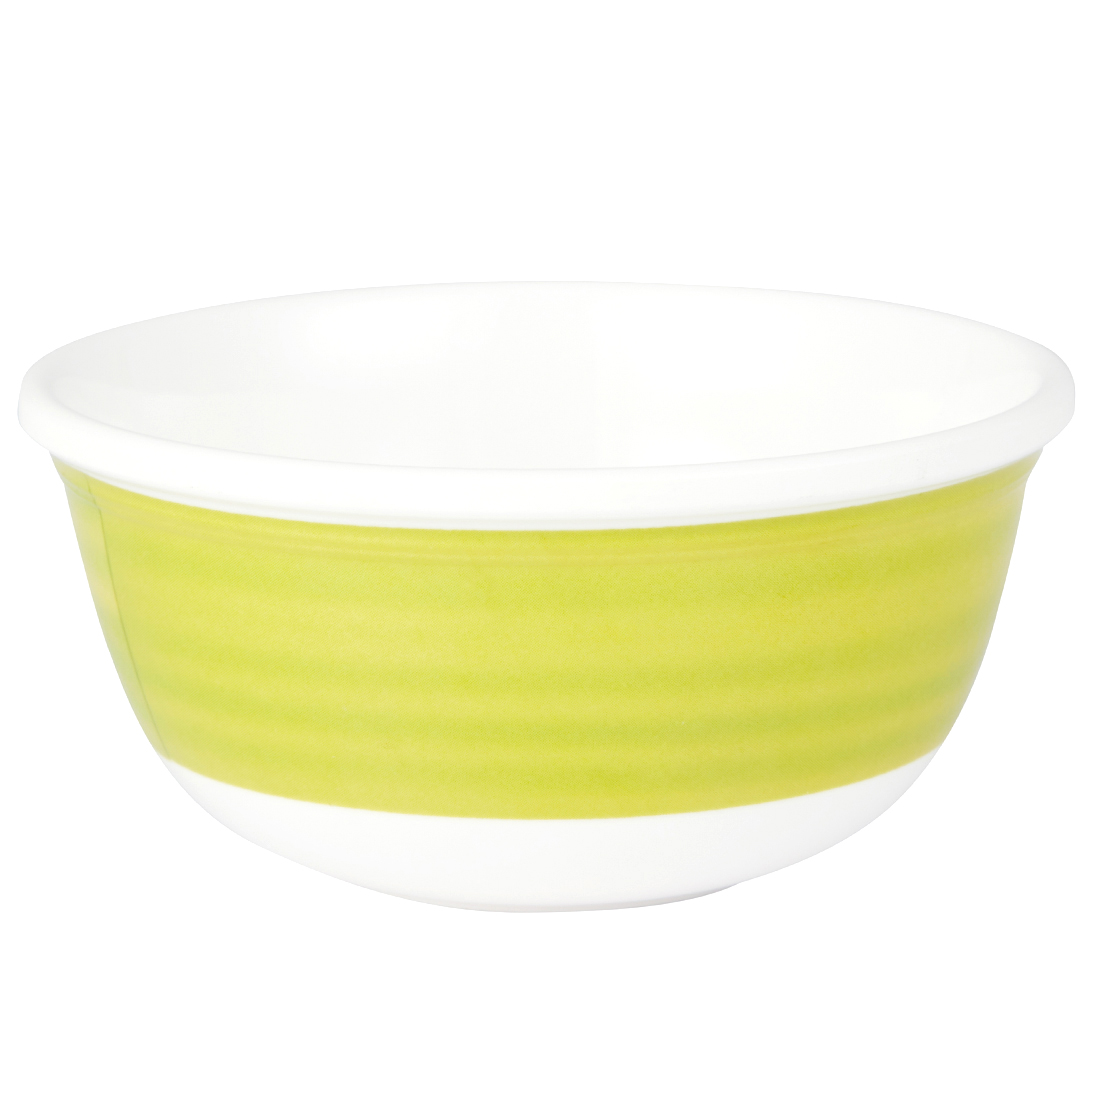 Urmi Bamboo Palm Leaf Veg Bowl Serving Bowls in White Colour by Living Essence